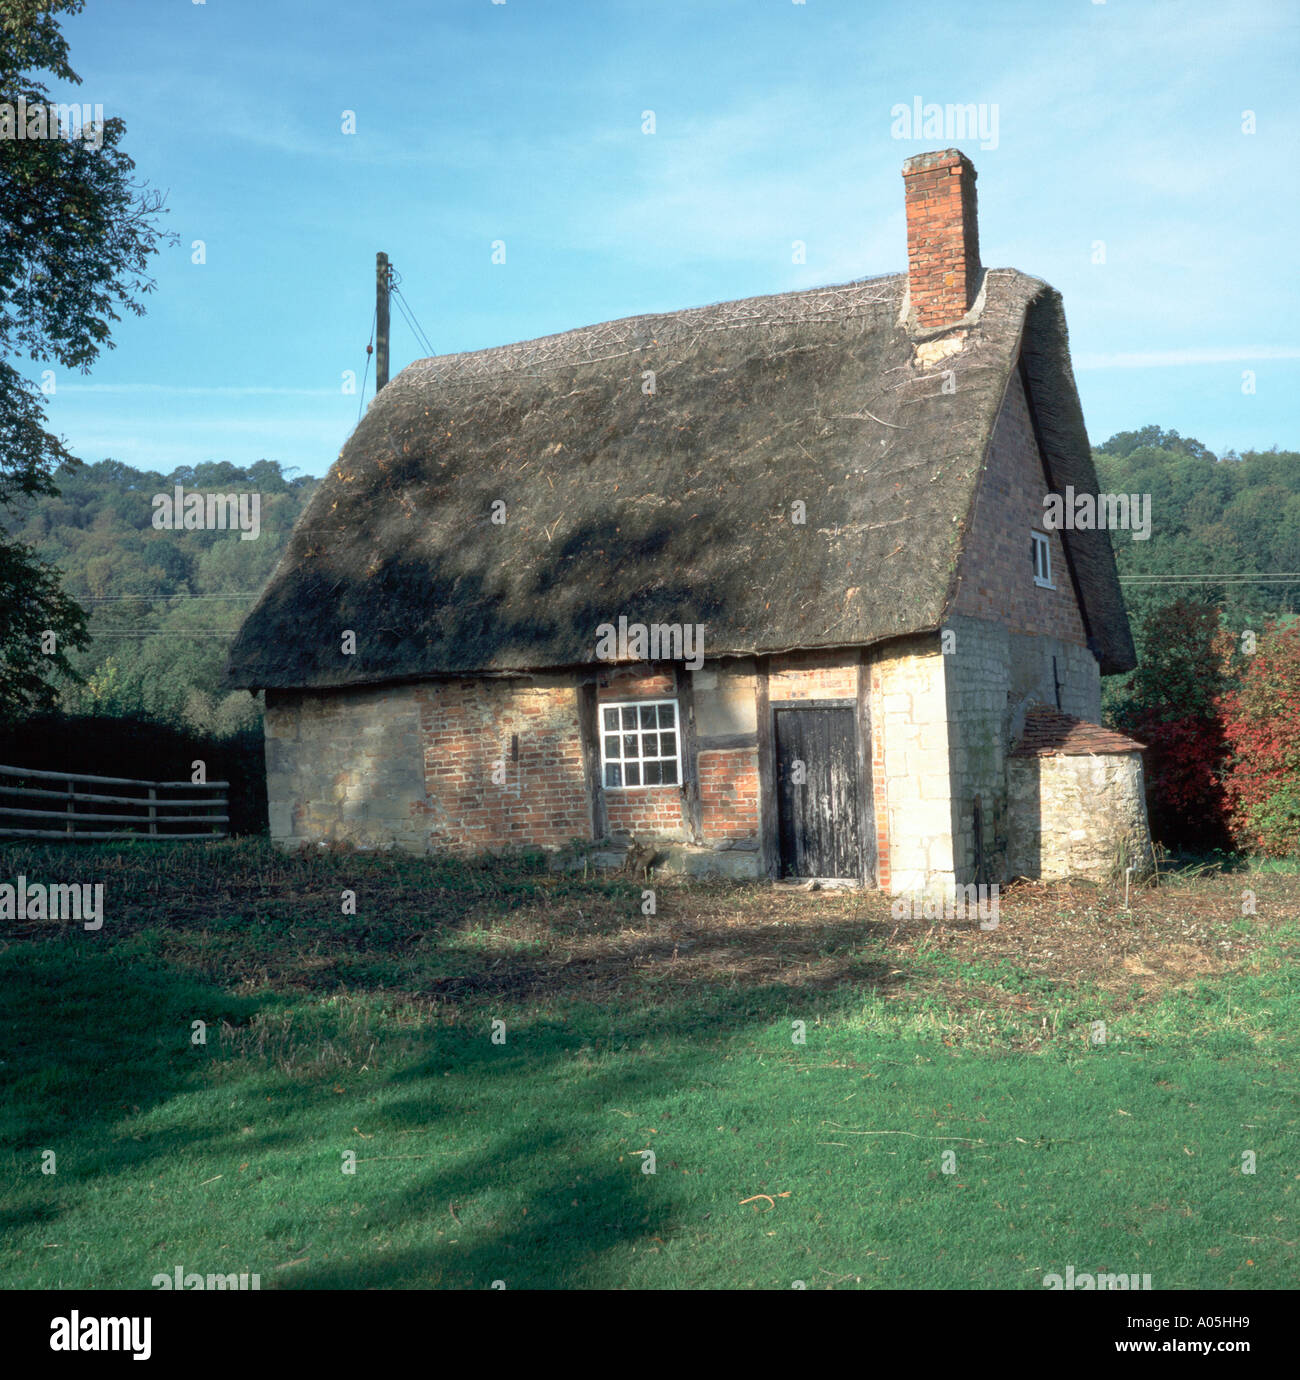 small run down old thatched cottage stock photo royalty free